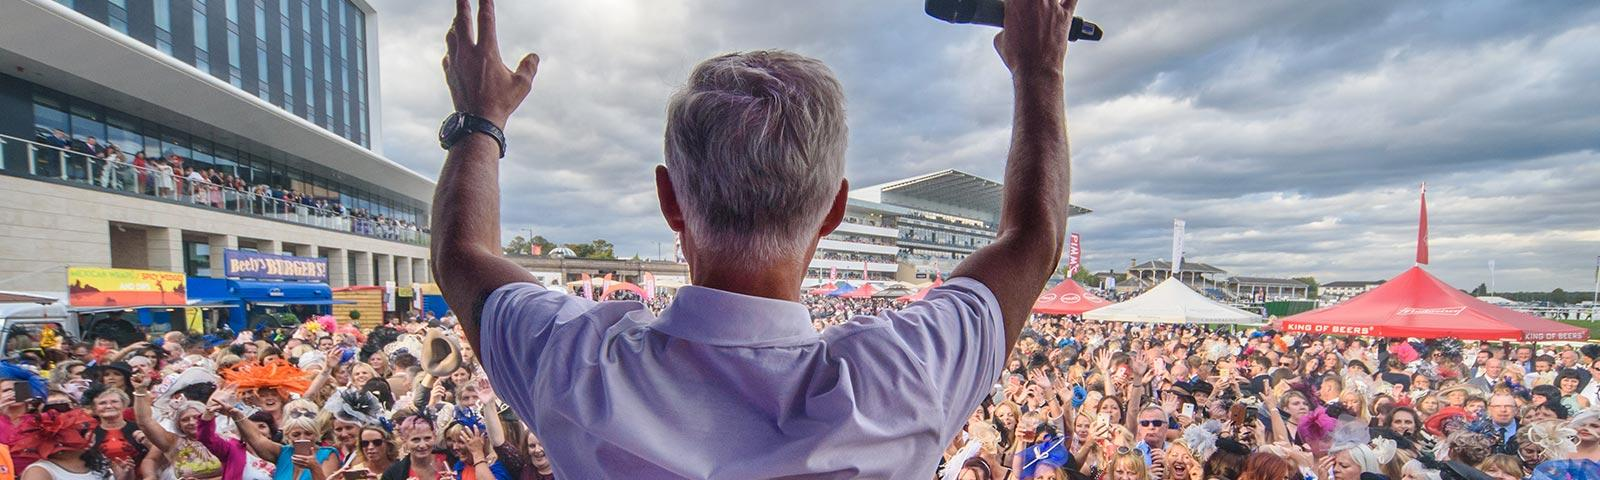 DJ facing a concert crowd at Doncaster Racecourse